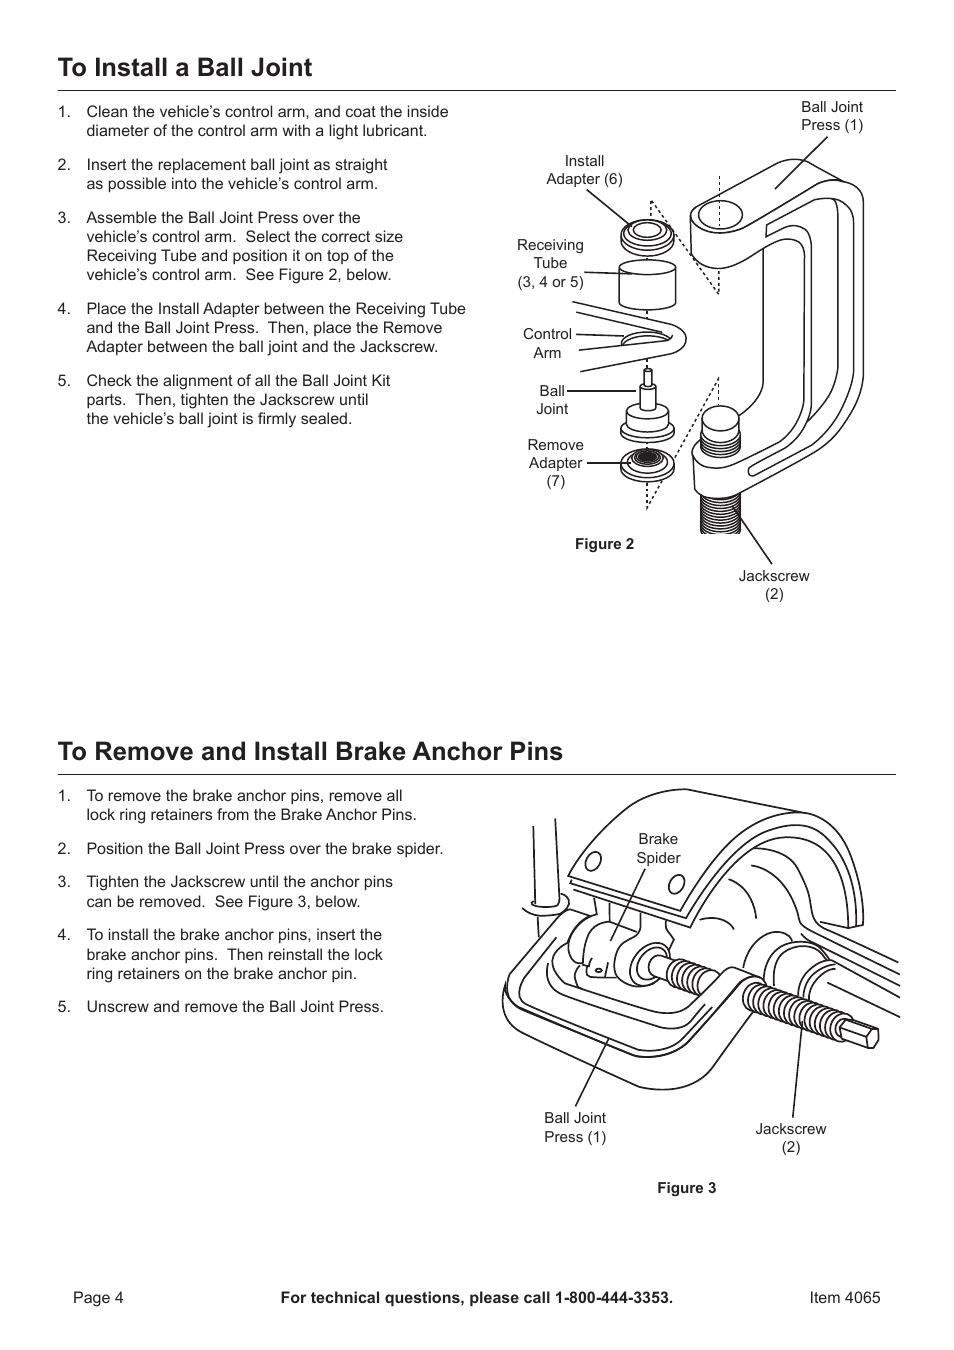 Ball Joint Press Diagram Trusted Schematics Harbor Freight Tools Pittsburgh Automotive 2wd And 4wd 2002 Ford Escape